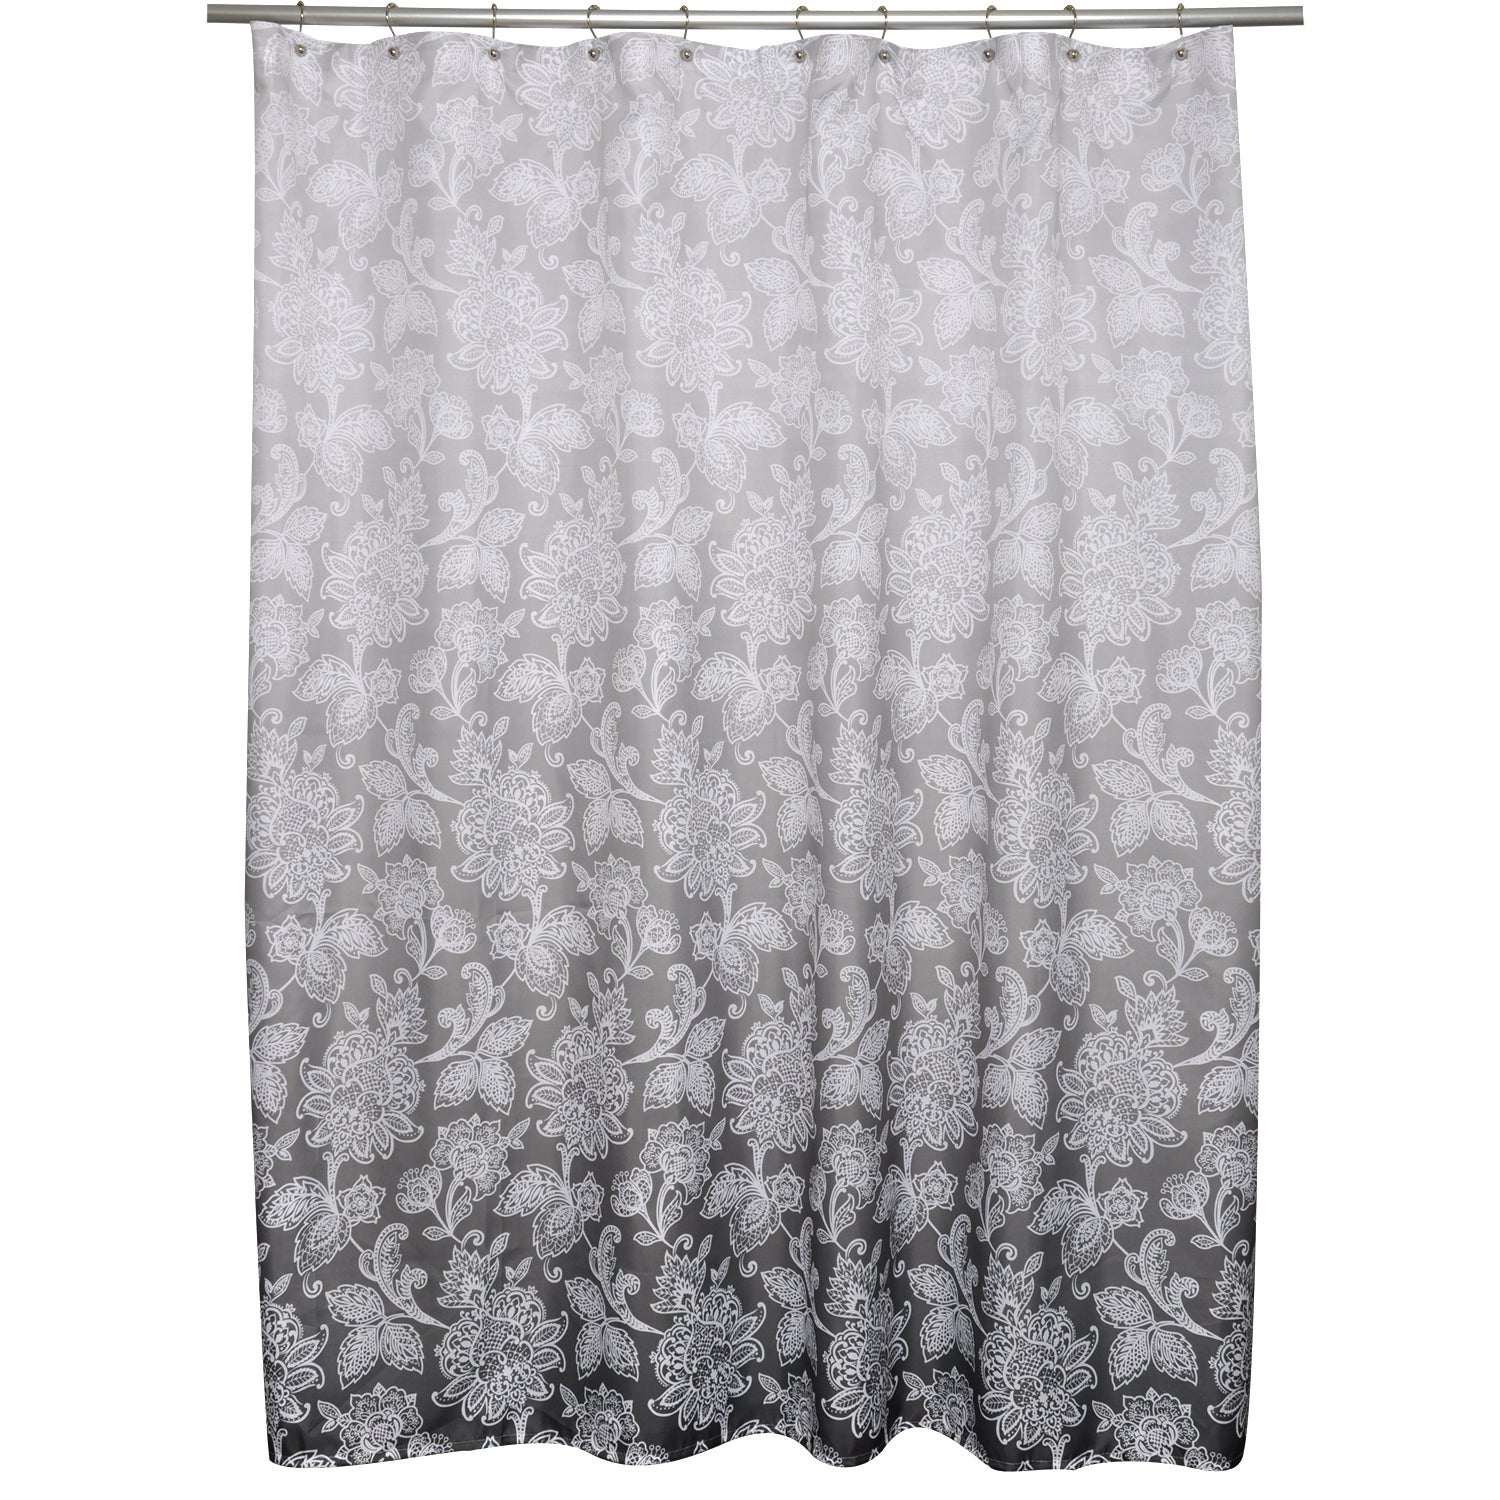 Shop Ombre Flower Shower Curtain Free Shipping On Orders Over 45